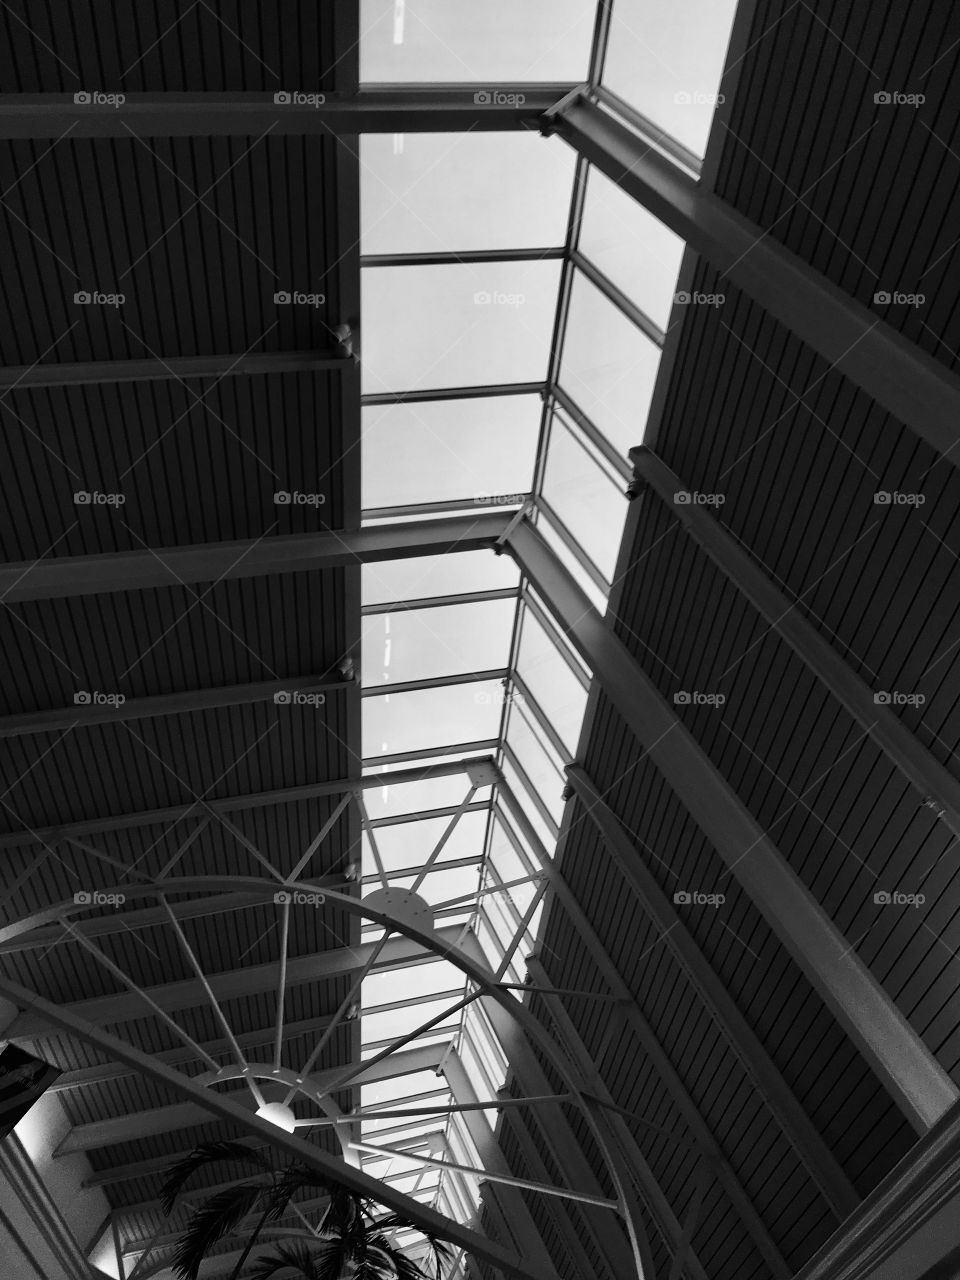 Awesome skylight at the mall